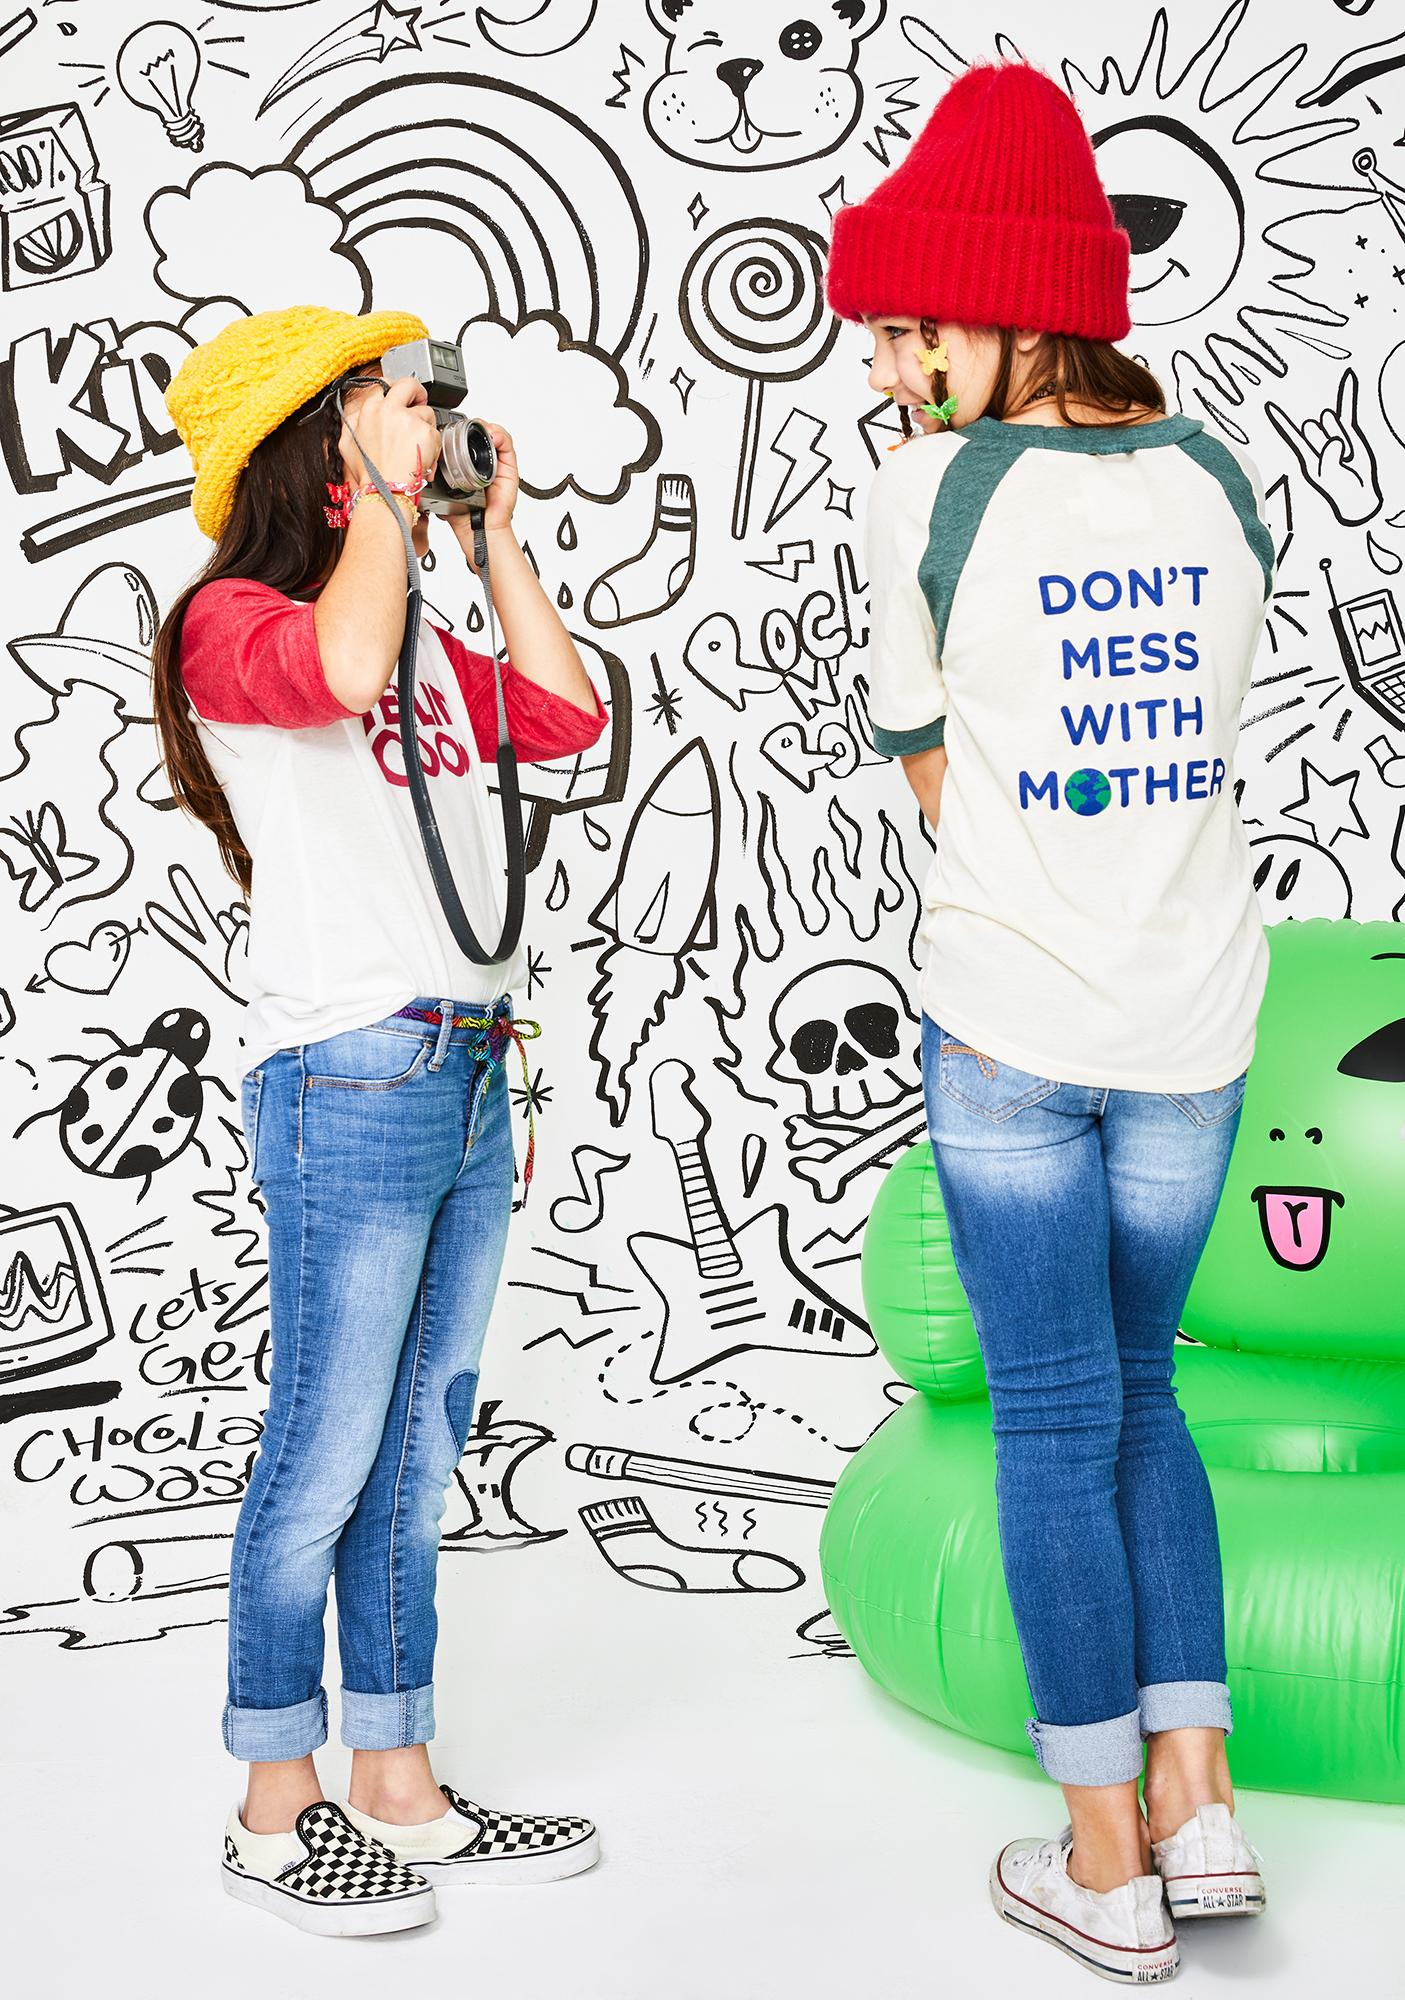 Camp Collection Kids Don't Mess With Mother Tee